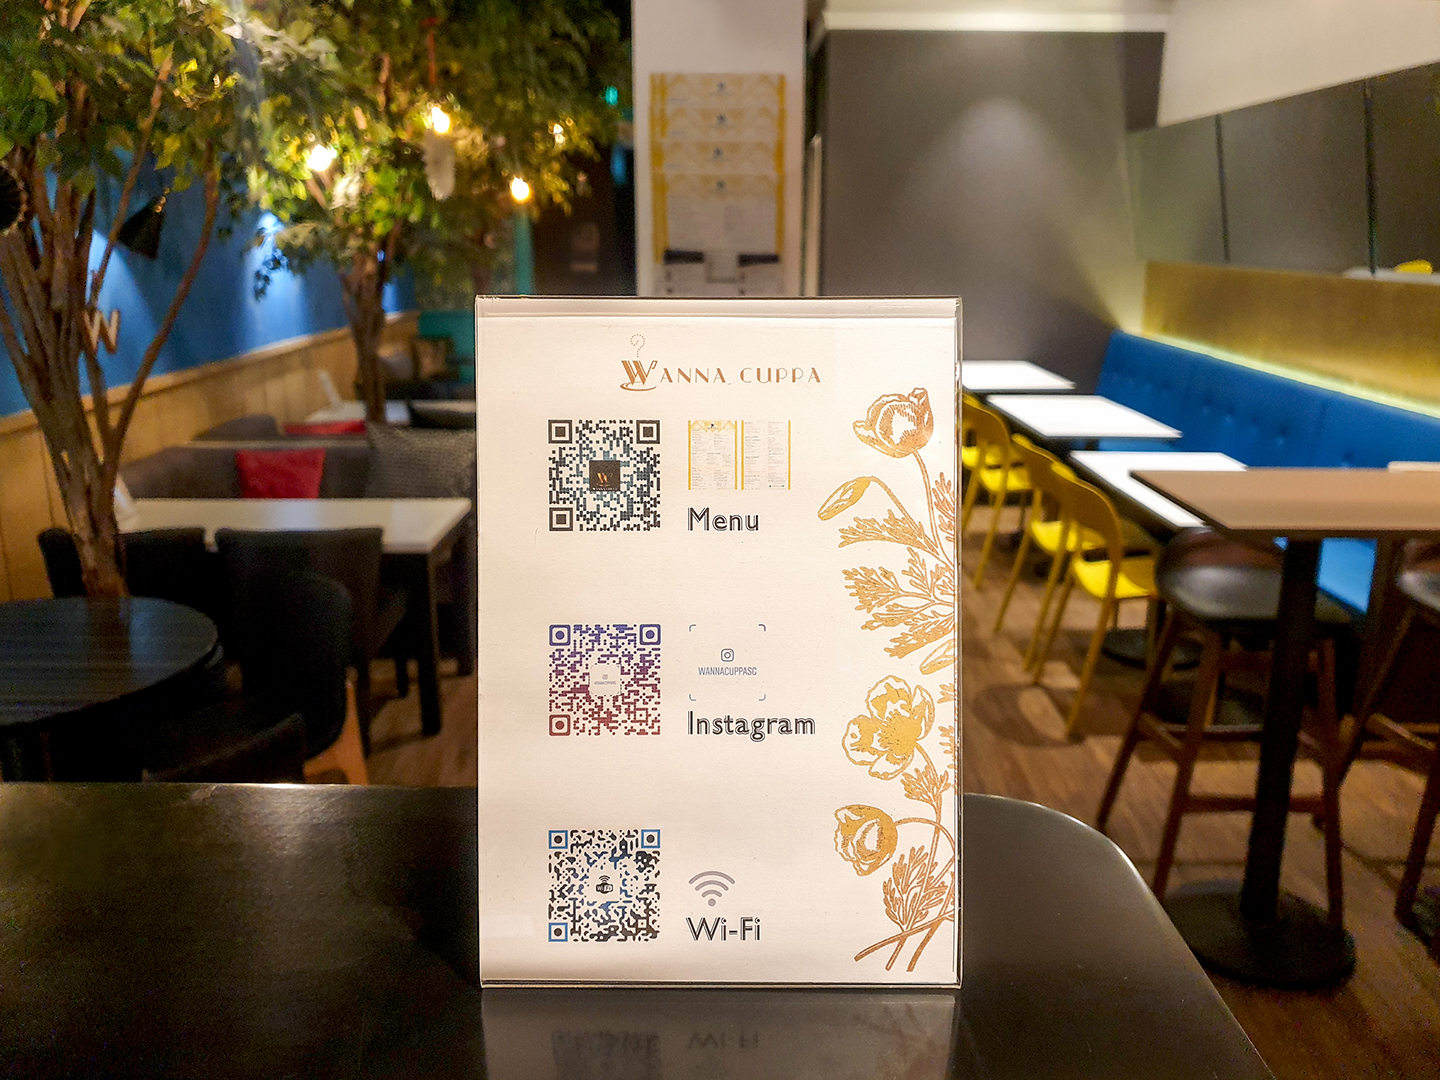 The backdrop is the rear dining area of the cafe featuring 3 large trees, an inclined mirror above blue banqette seating and a variety of seating arrangements. An transparent A5 display of QR codes is positioned centrally in the foreground. The QR Codes are for dine-in customers to scan for viewing the menu, connecting to the wi-fi and visiting WANNA CUPPA's Instagram account. The A5 display has a white background with gold flowers to one side. It sits on top of a black countertop.